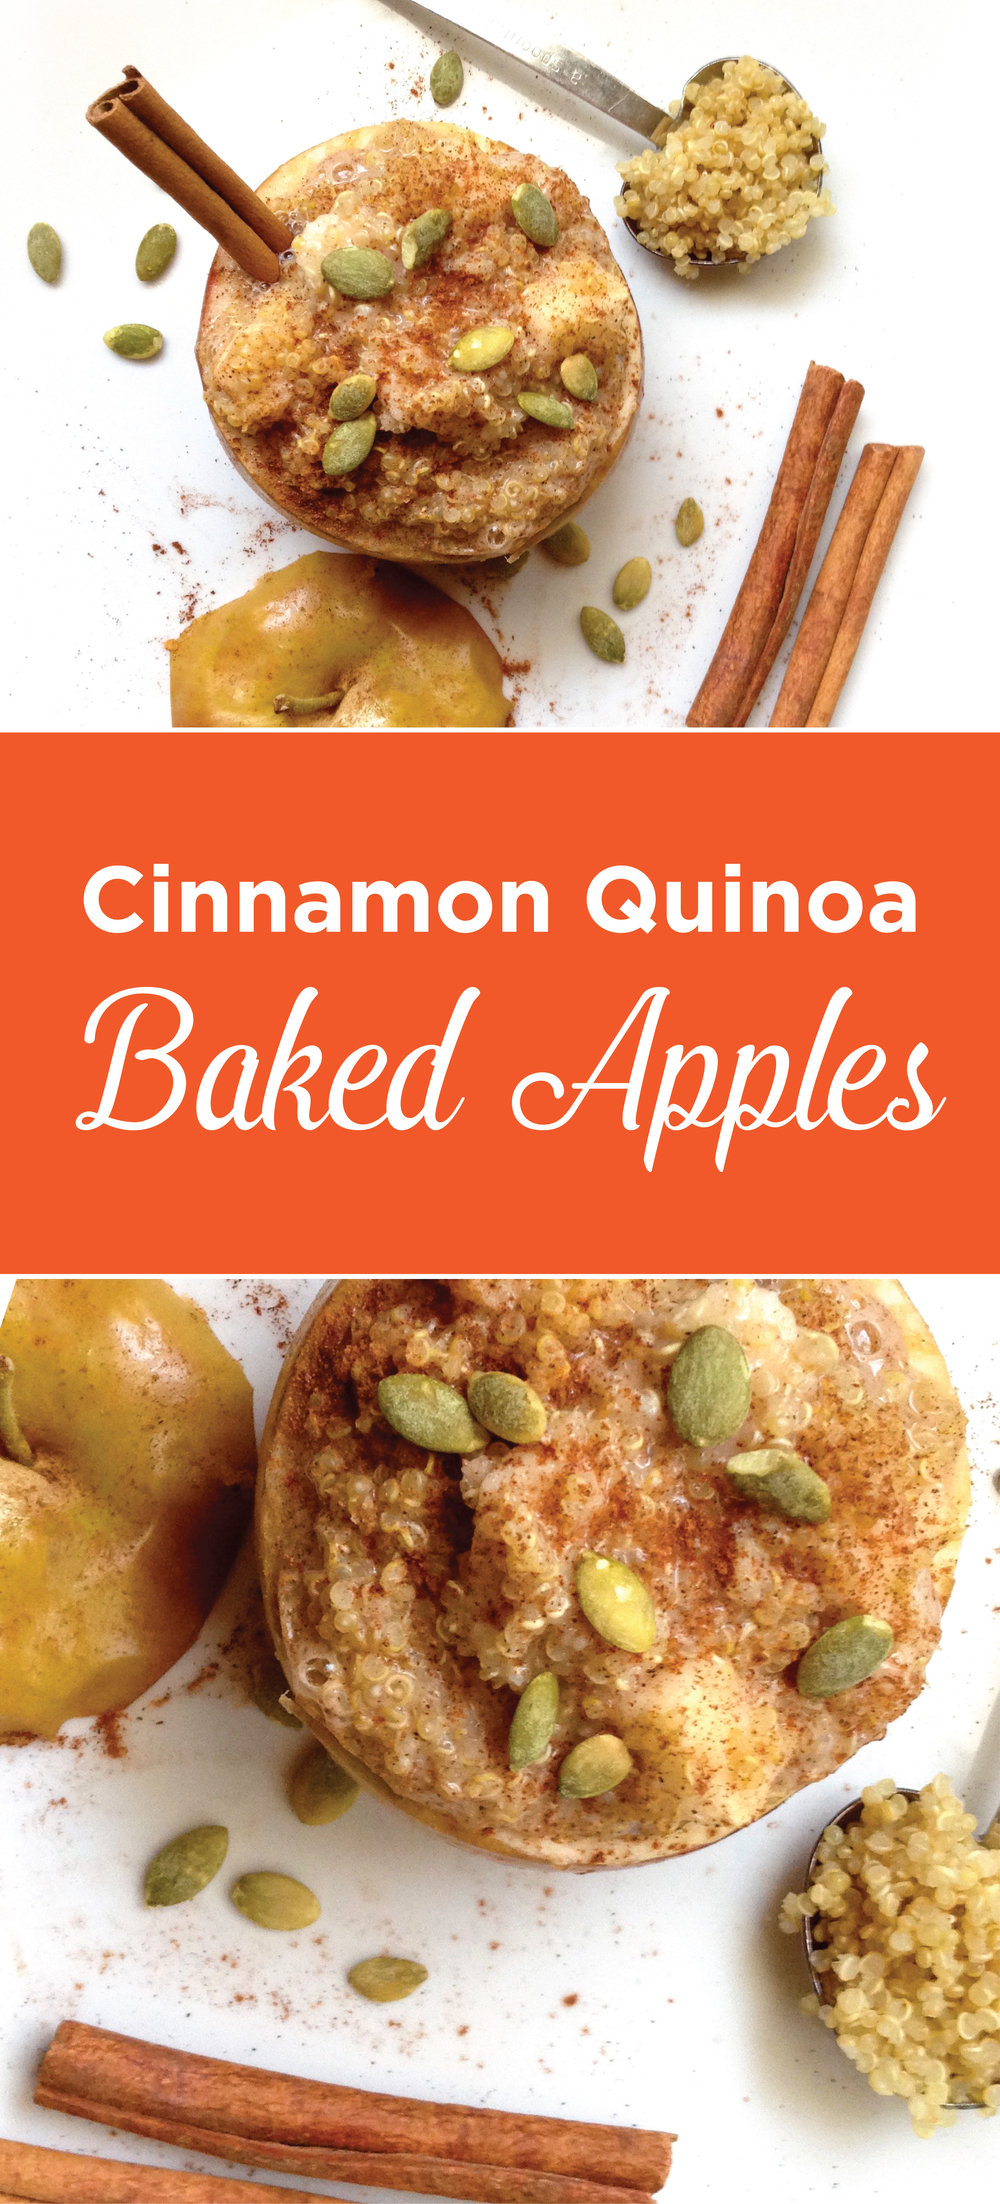 Healthy Cinnamon Quinoa Stuffed Apples. Baked to perfection! This warm and delicious breakfast is perfect for those chilly mornings. Fuel your body with this protein-packed meal.